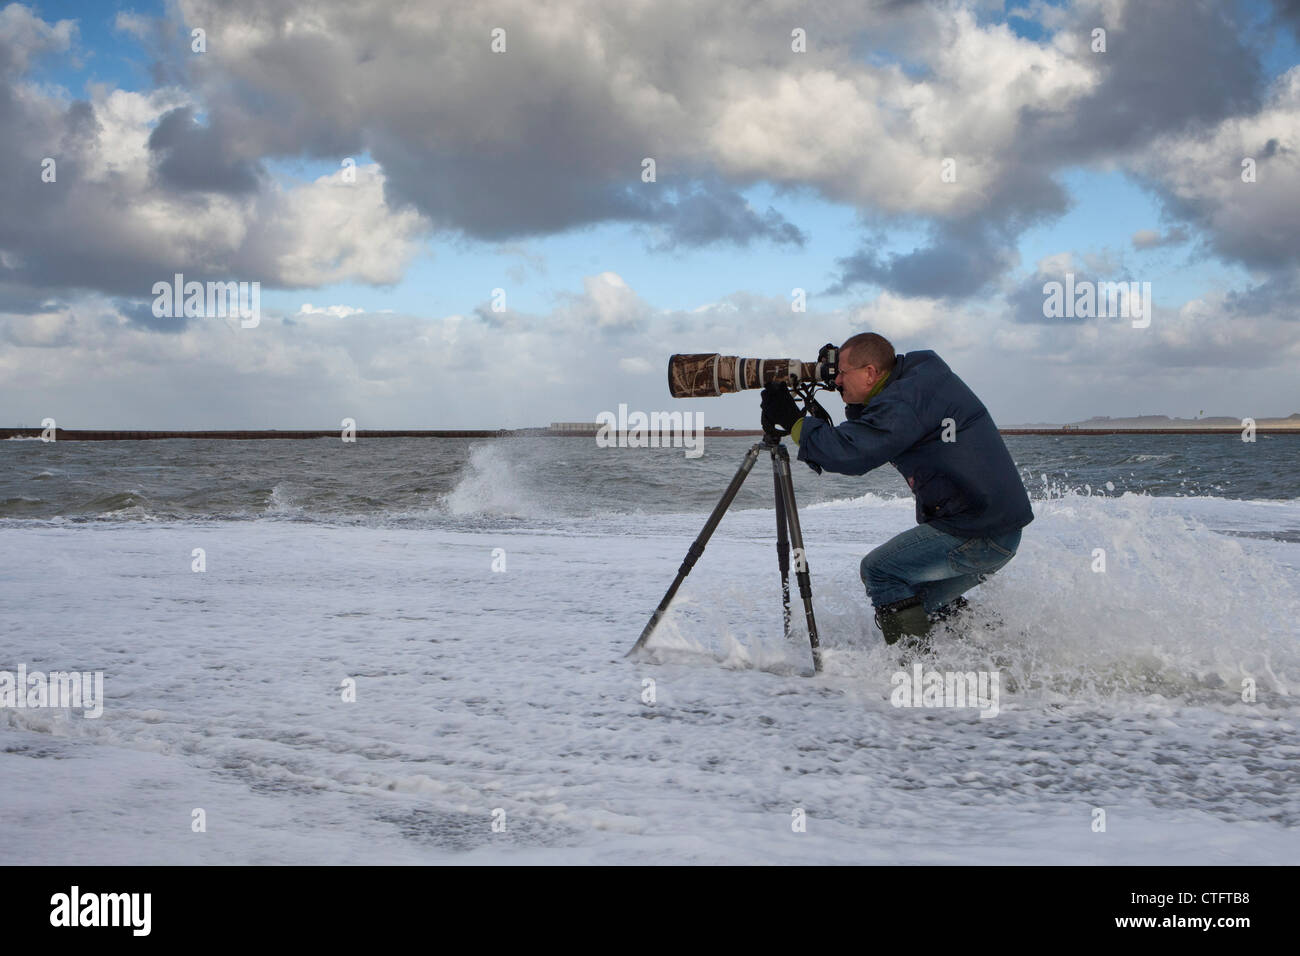 The Netherlands, IJmuiden, Photographer Frans Lemmens on pier during storm. - Stock Image